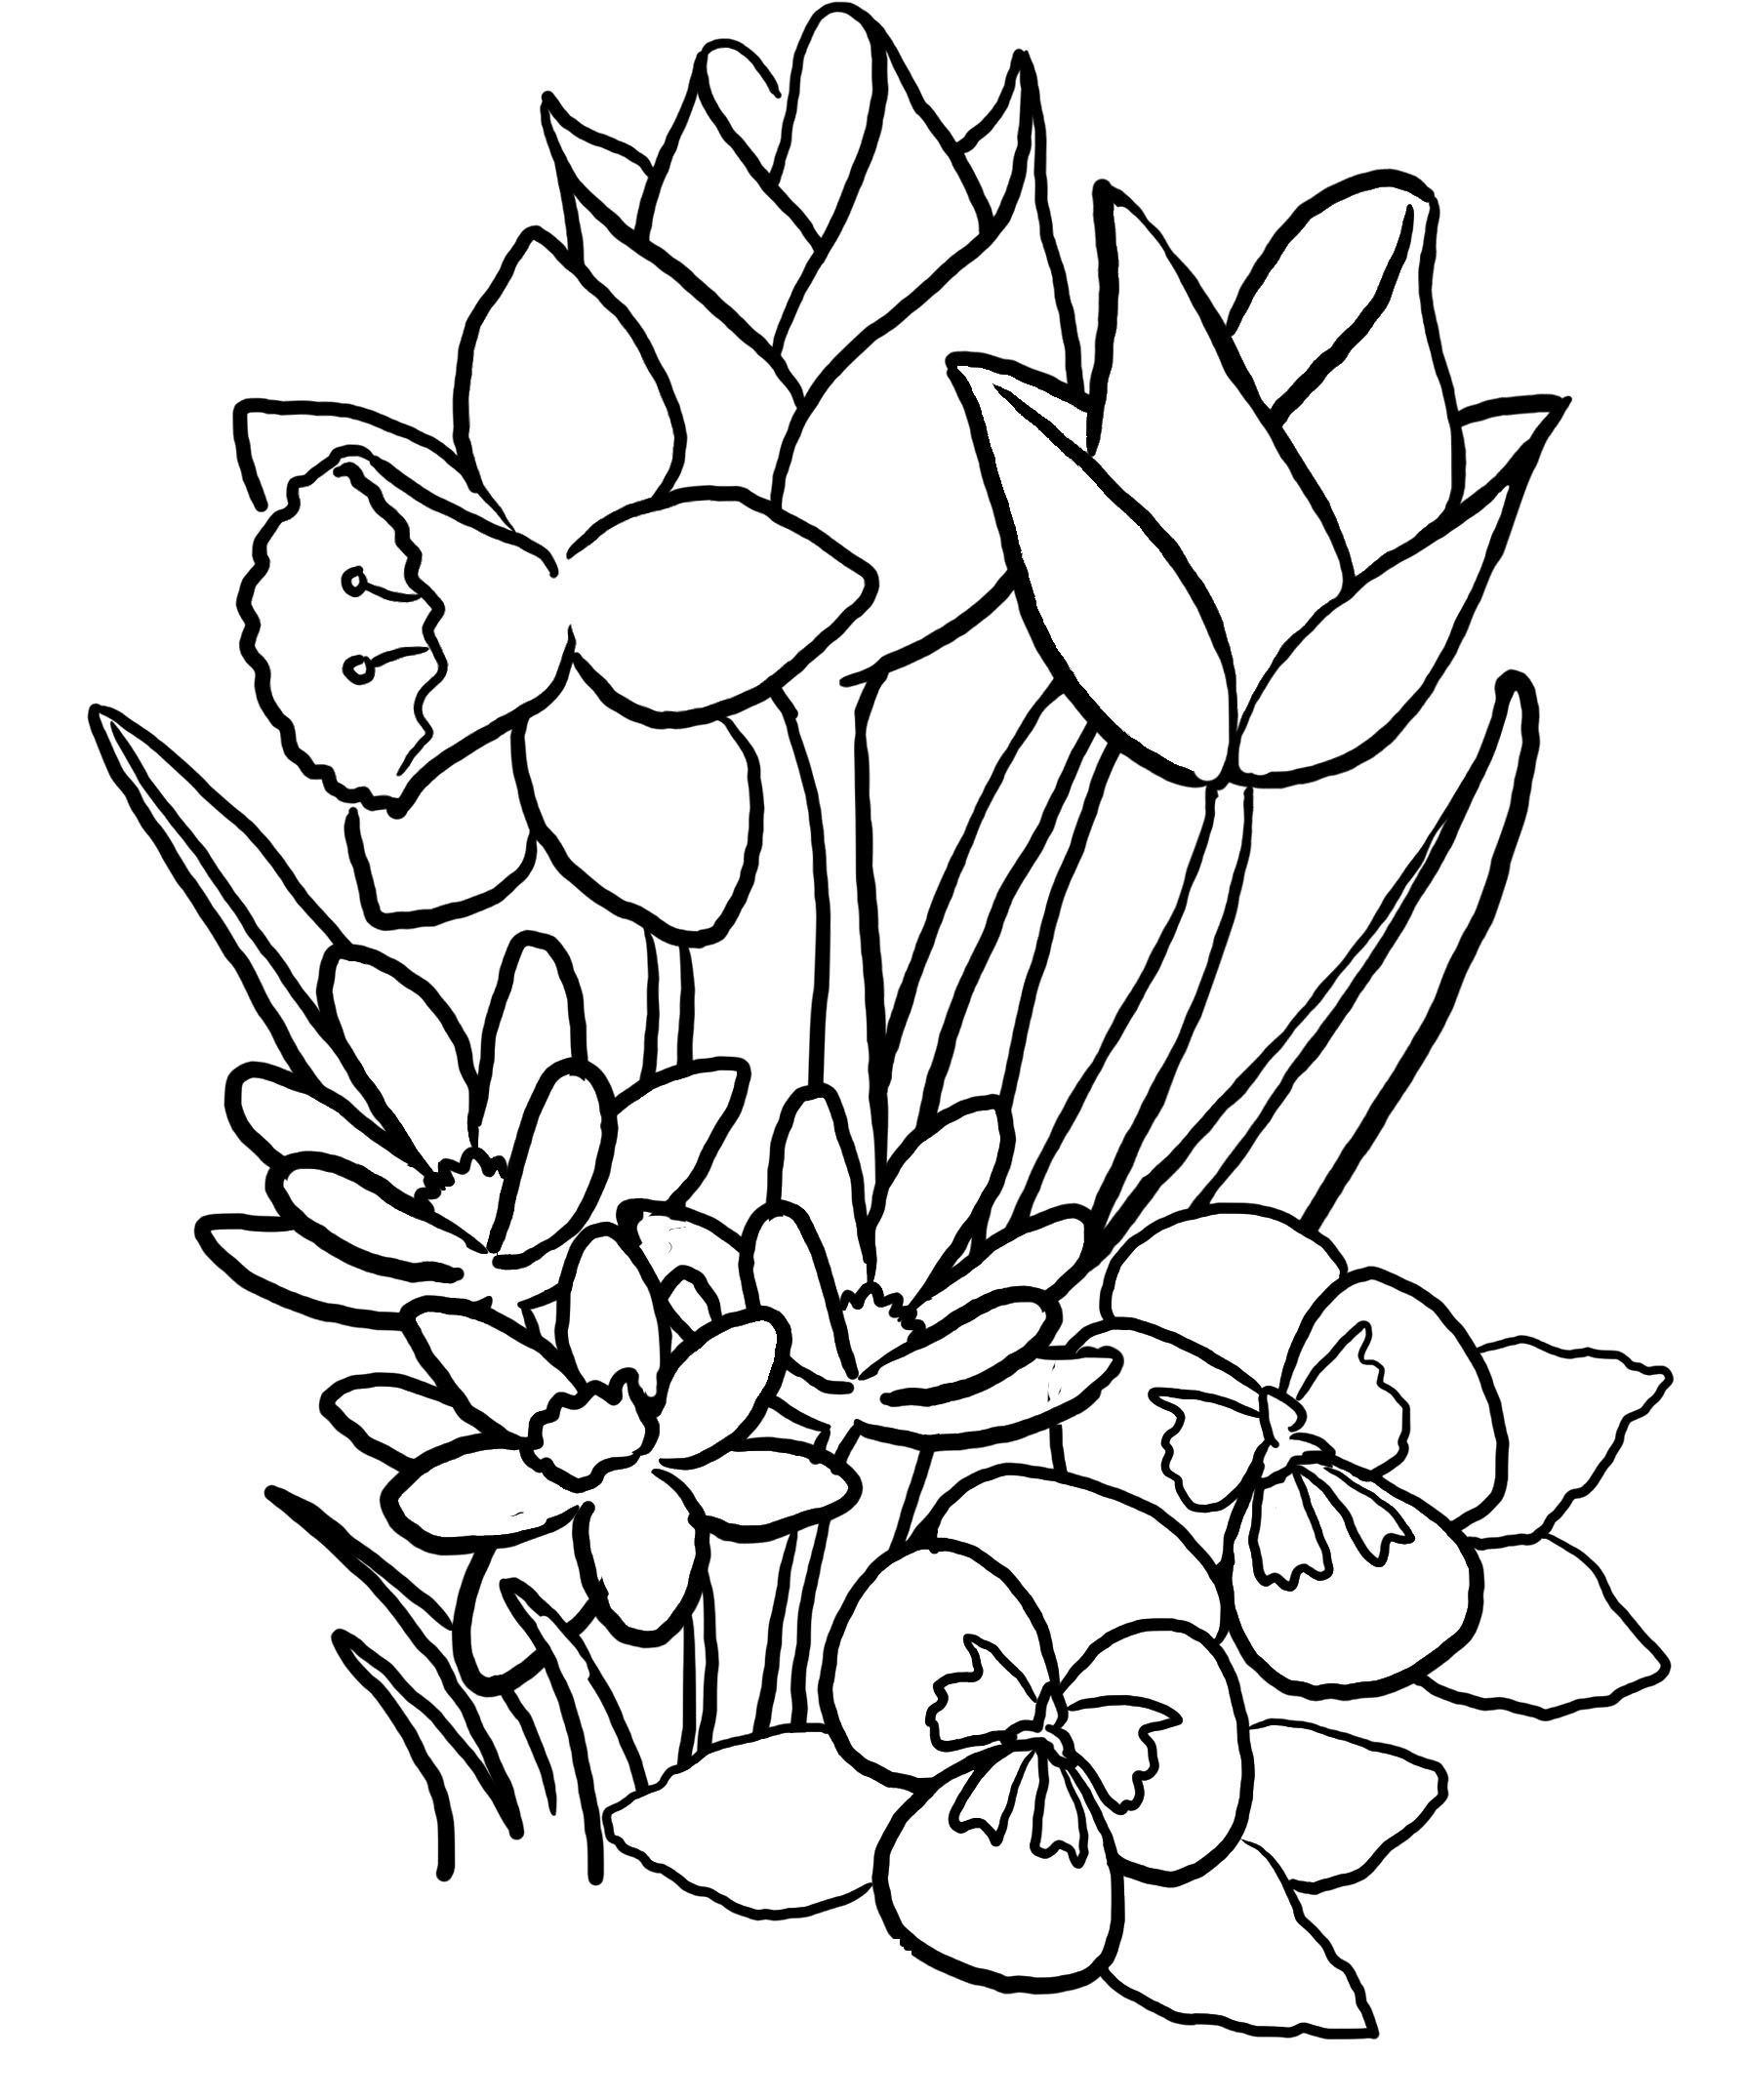 Flower vines coloring pages - Coloring Pages Flowers And Vines Corner Borders Coloring Page Crayola